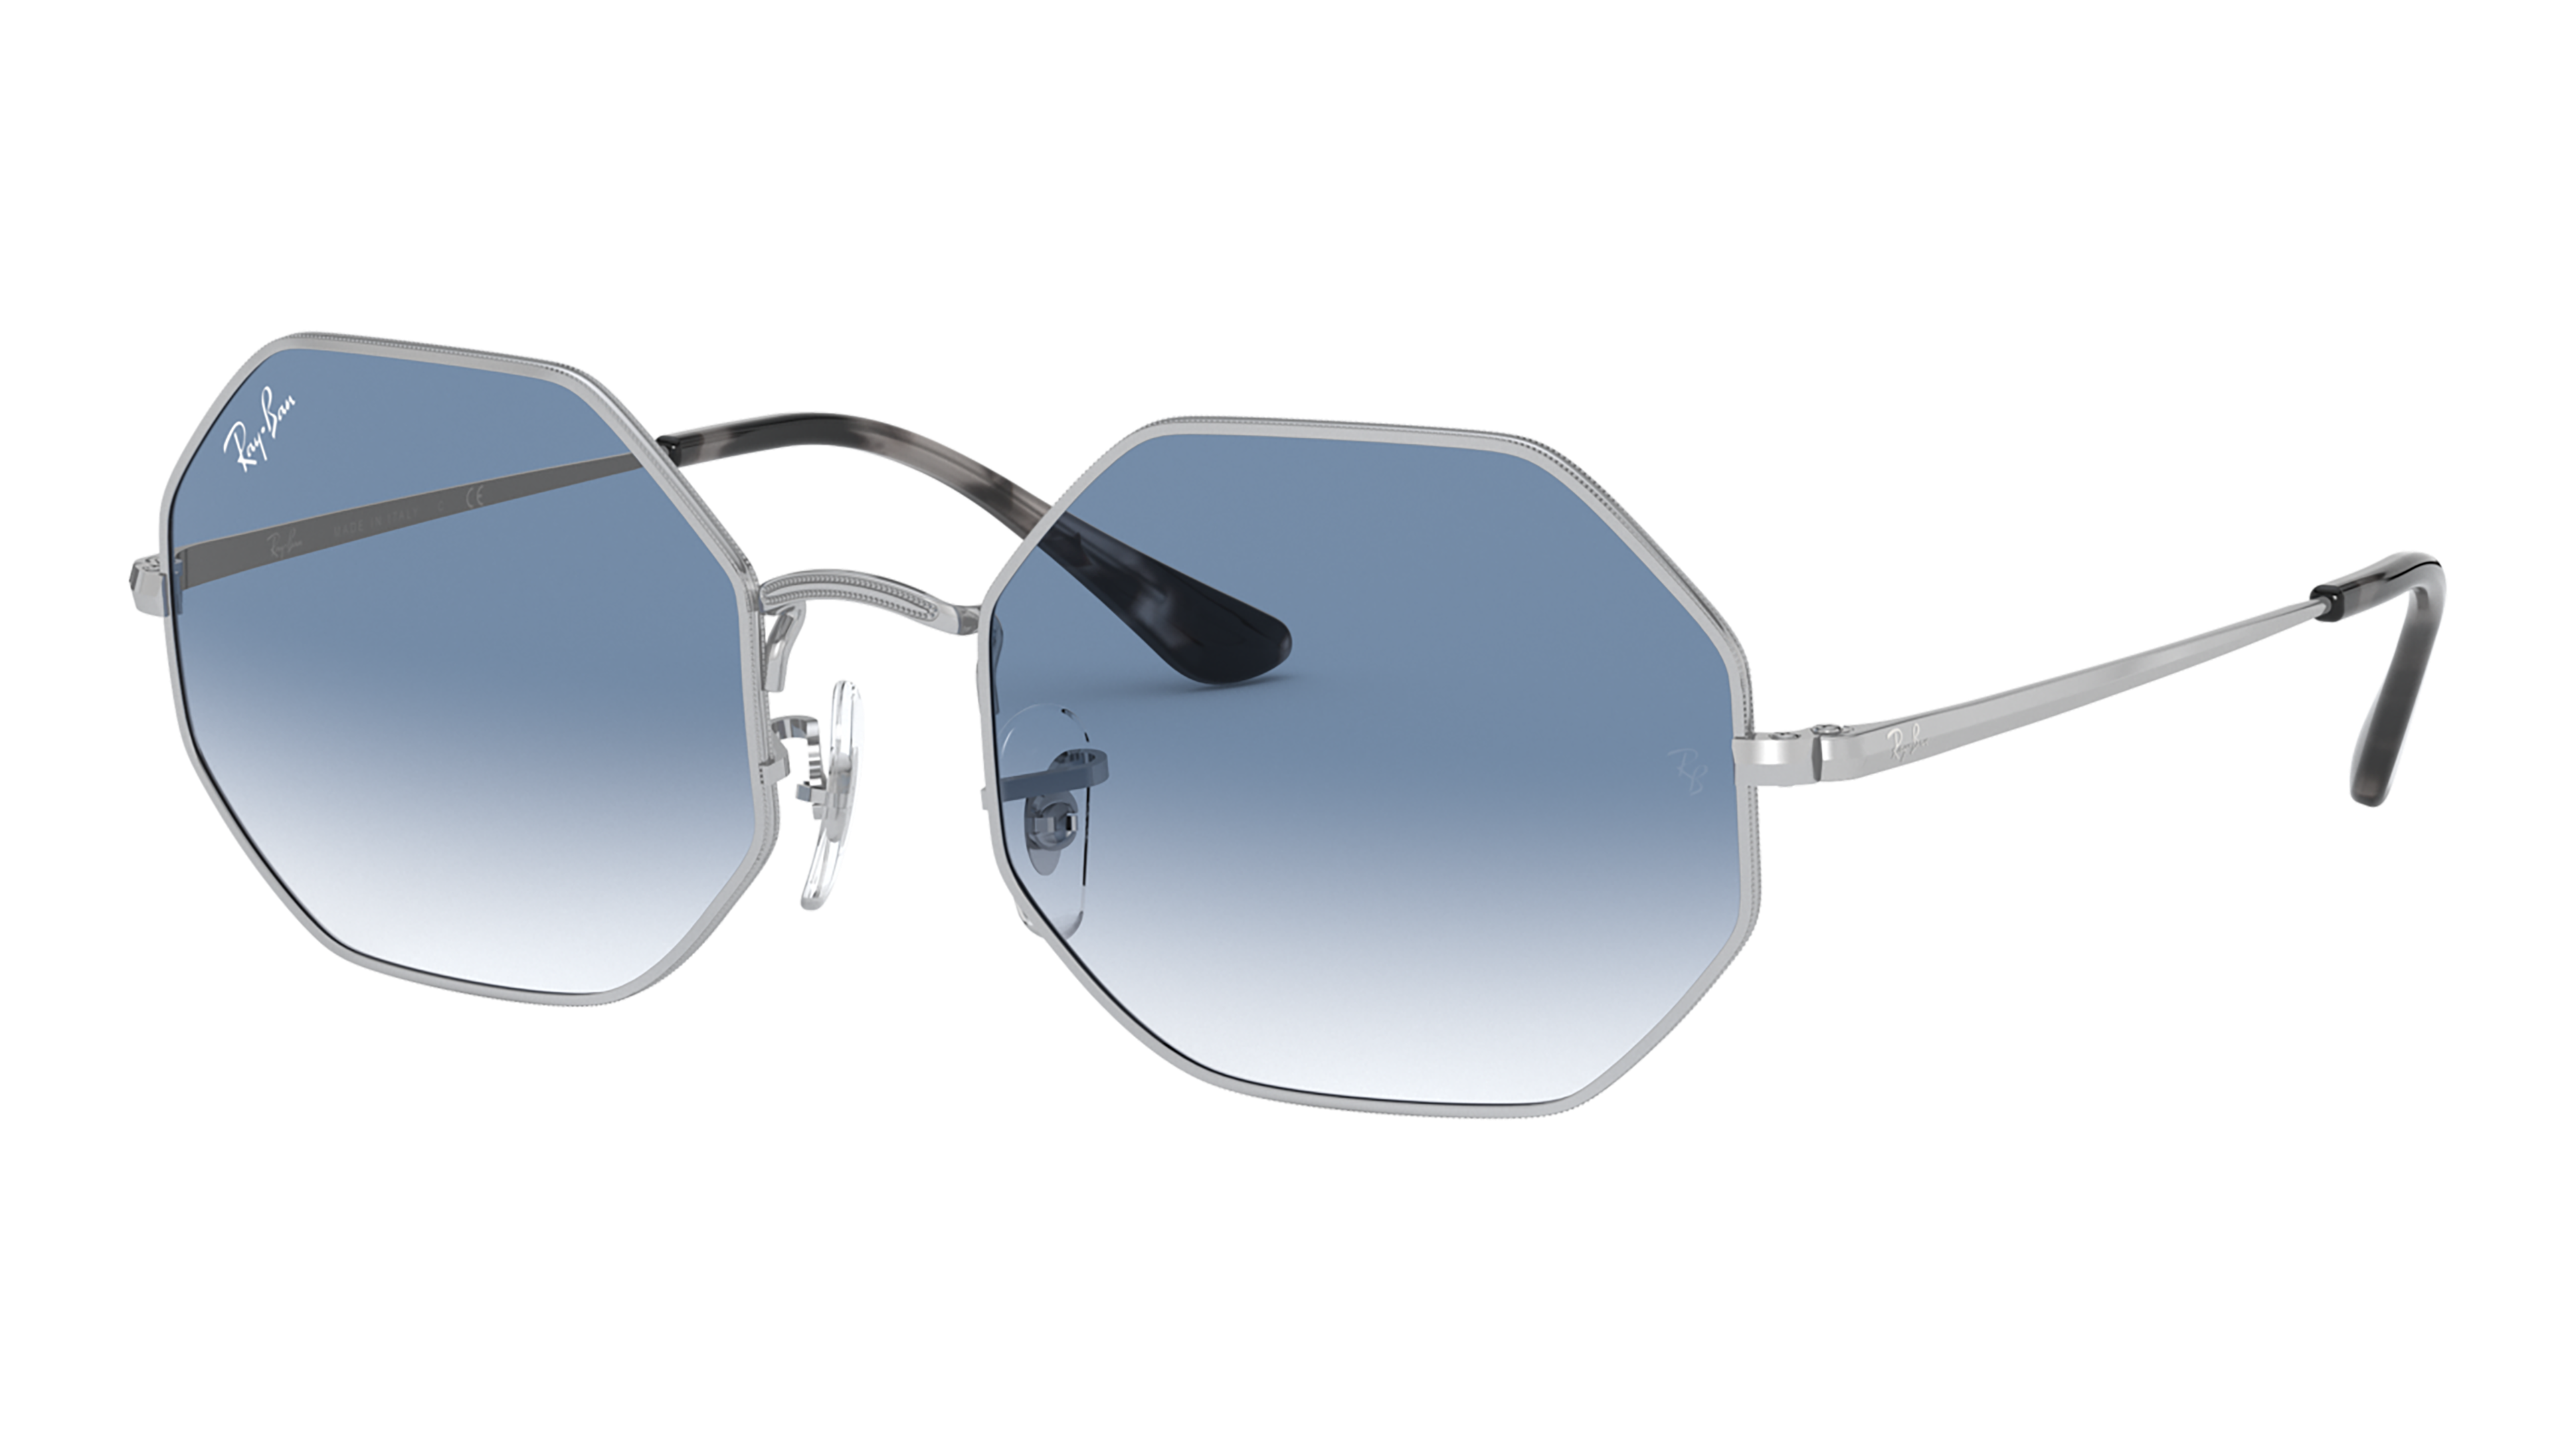 Angle_Left02 Ray-Ban Ray-Ban 0RB1972 91493F 54/19 Zilver/Blauw